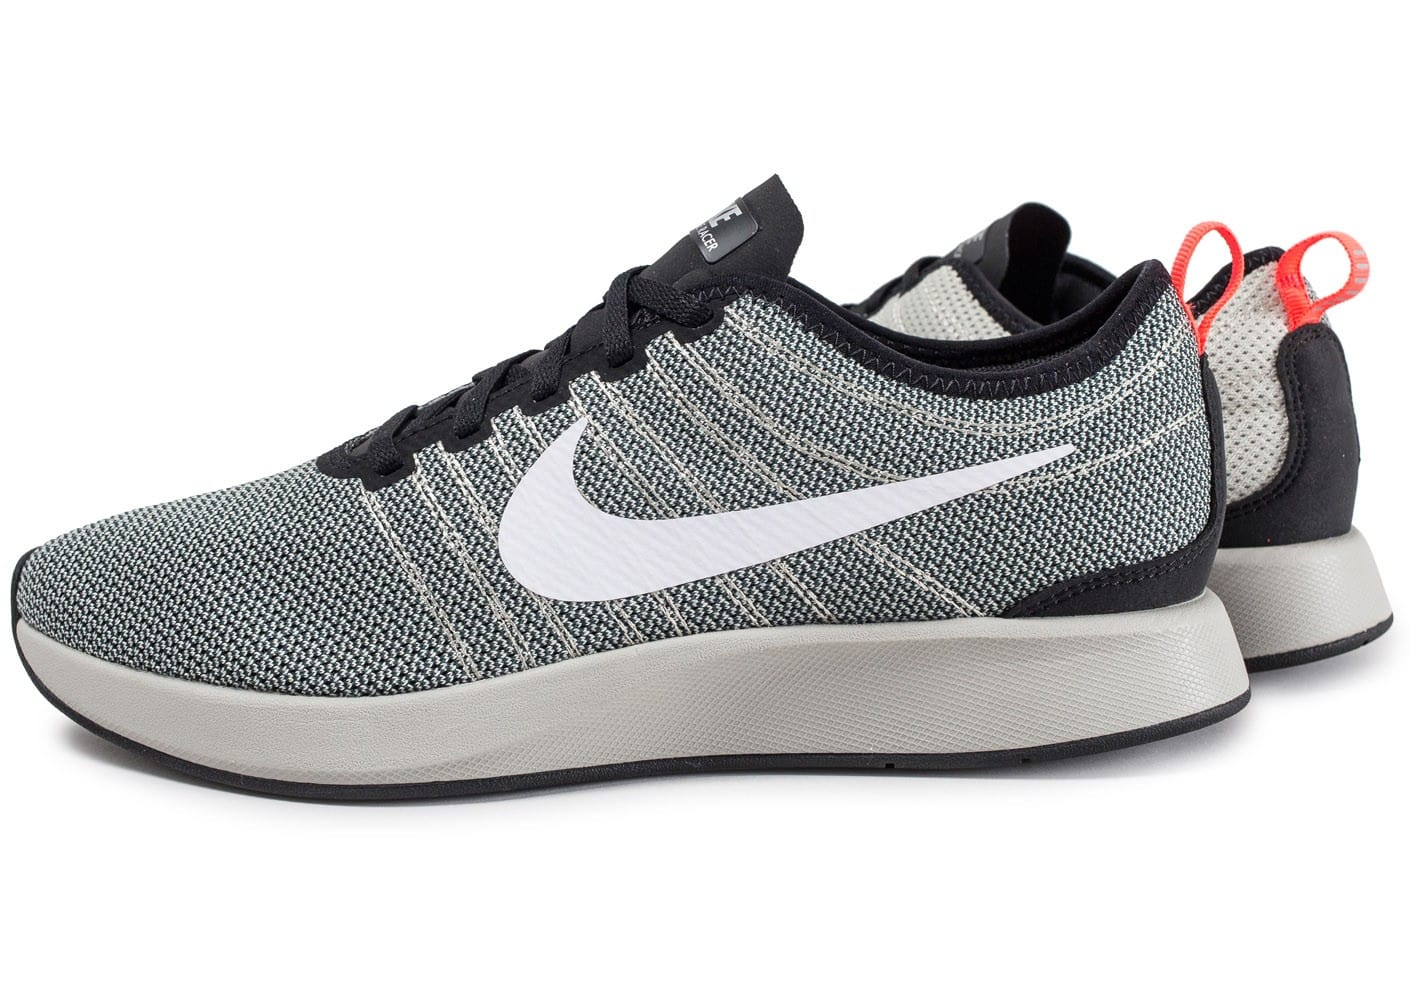 nike dualtone racer pale grey chaussures homme chausport. Black Bedroom Furniture Sets. Home Design Ideas